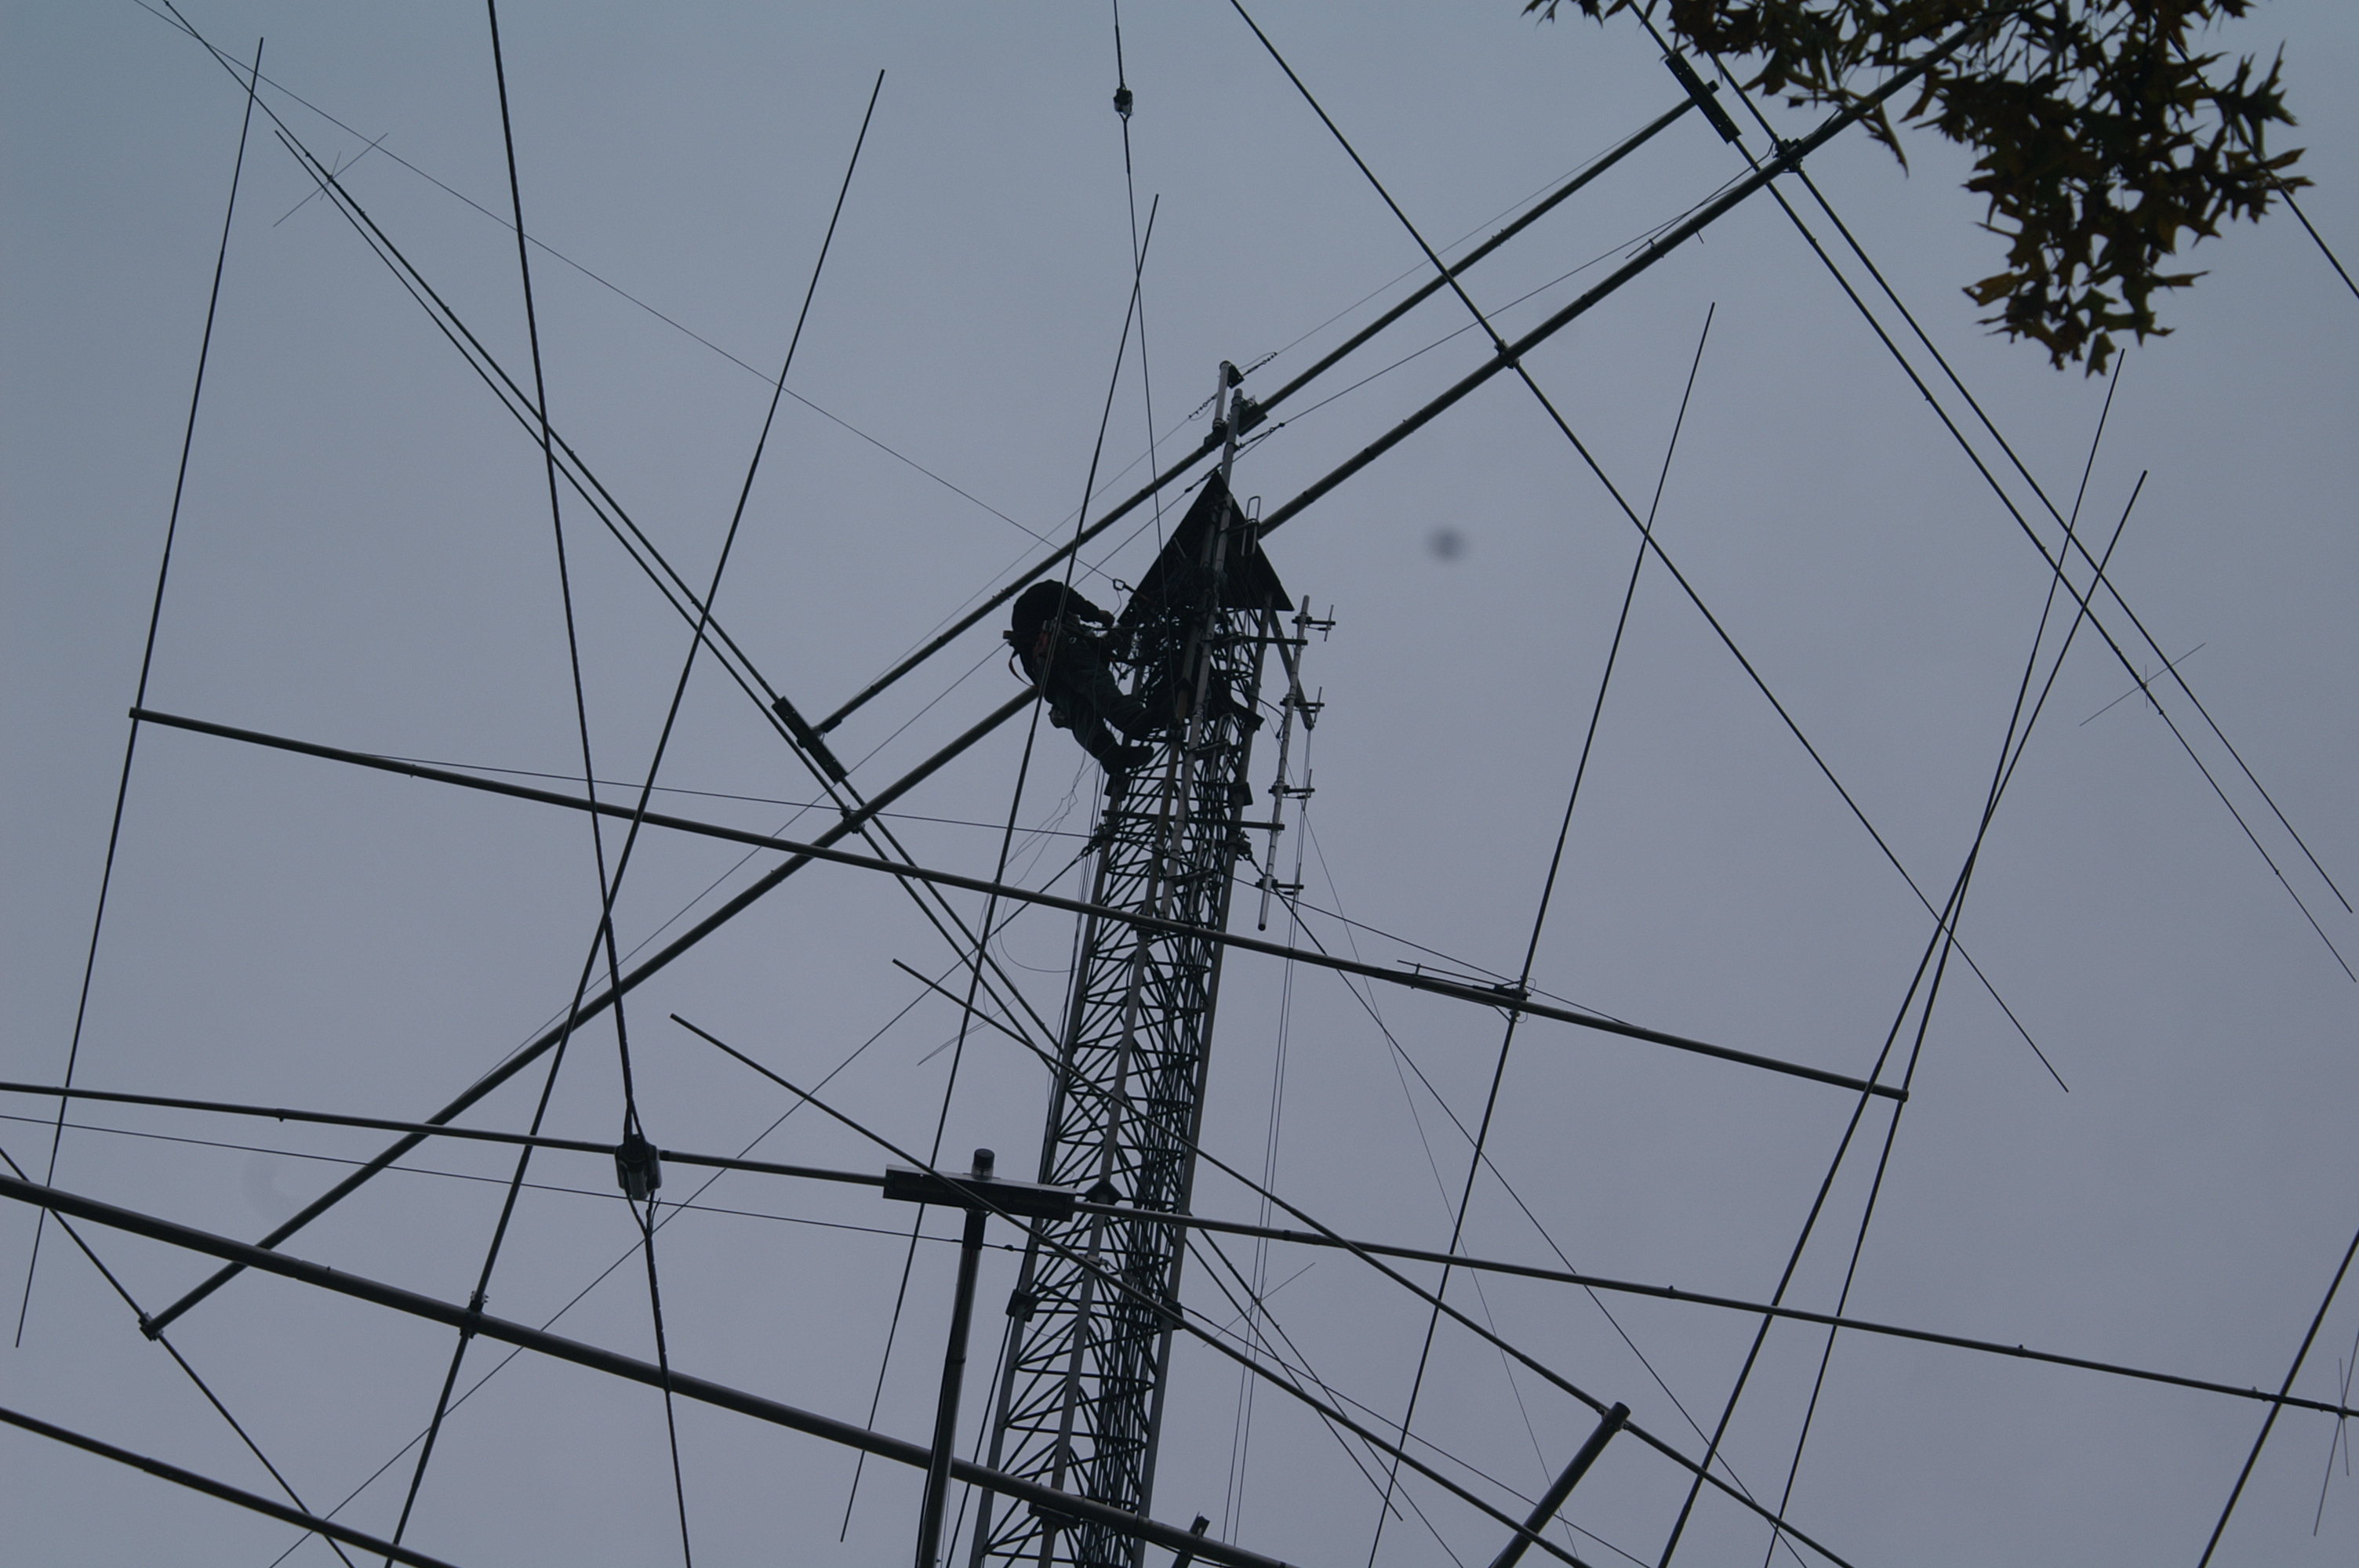 W1AW Receives Semi-Annual Antenna Inspection, New Antenna